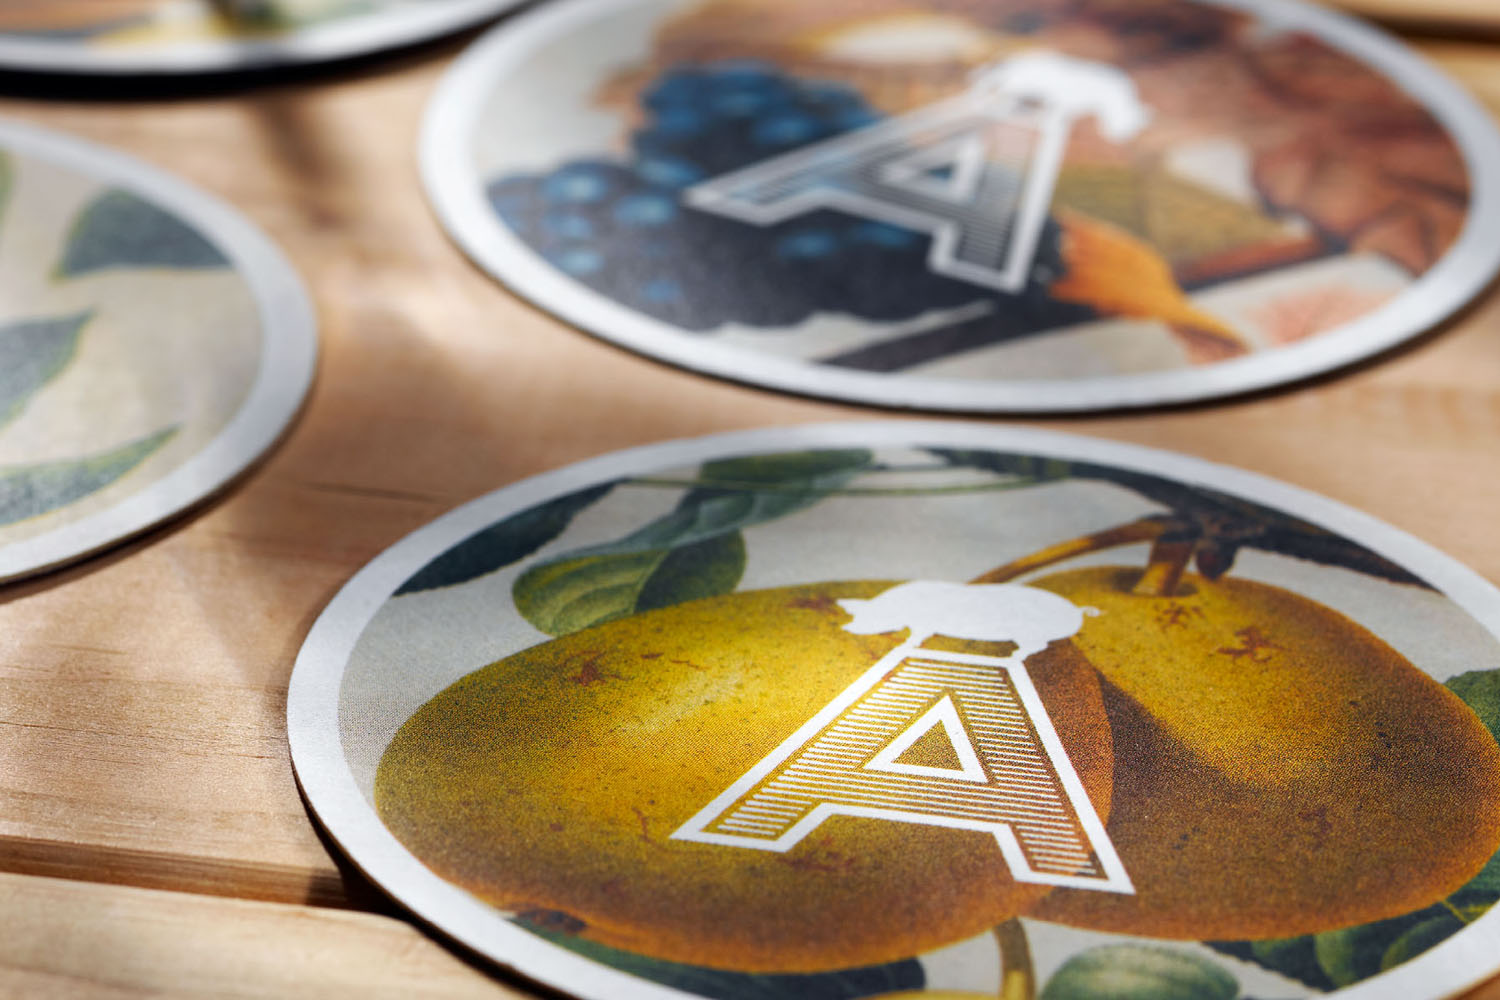 Beer mats and coasters for restaurant Agricola designed by Mucca, United States